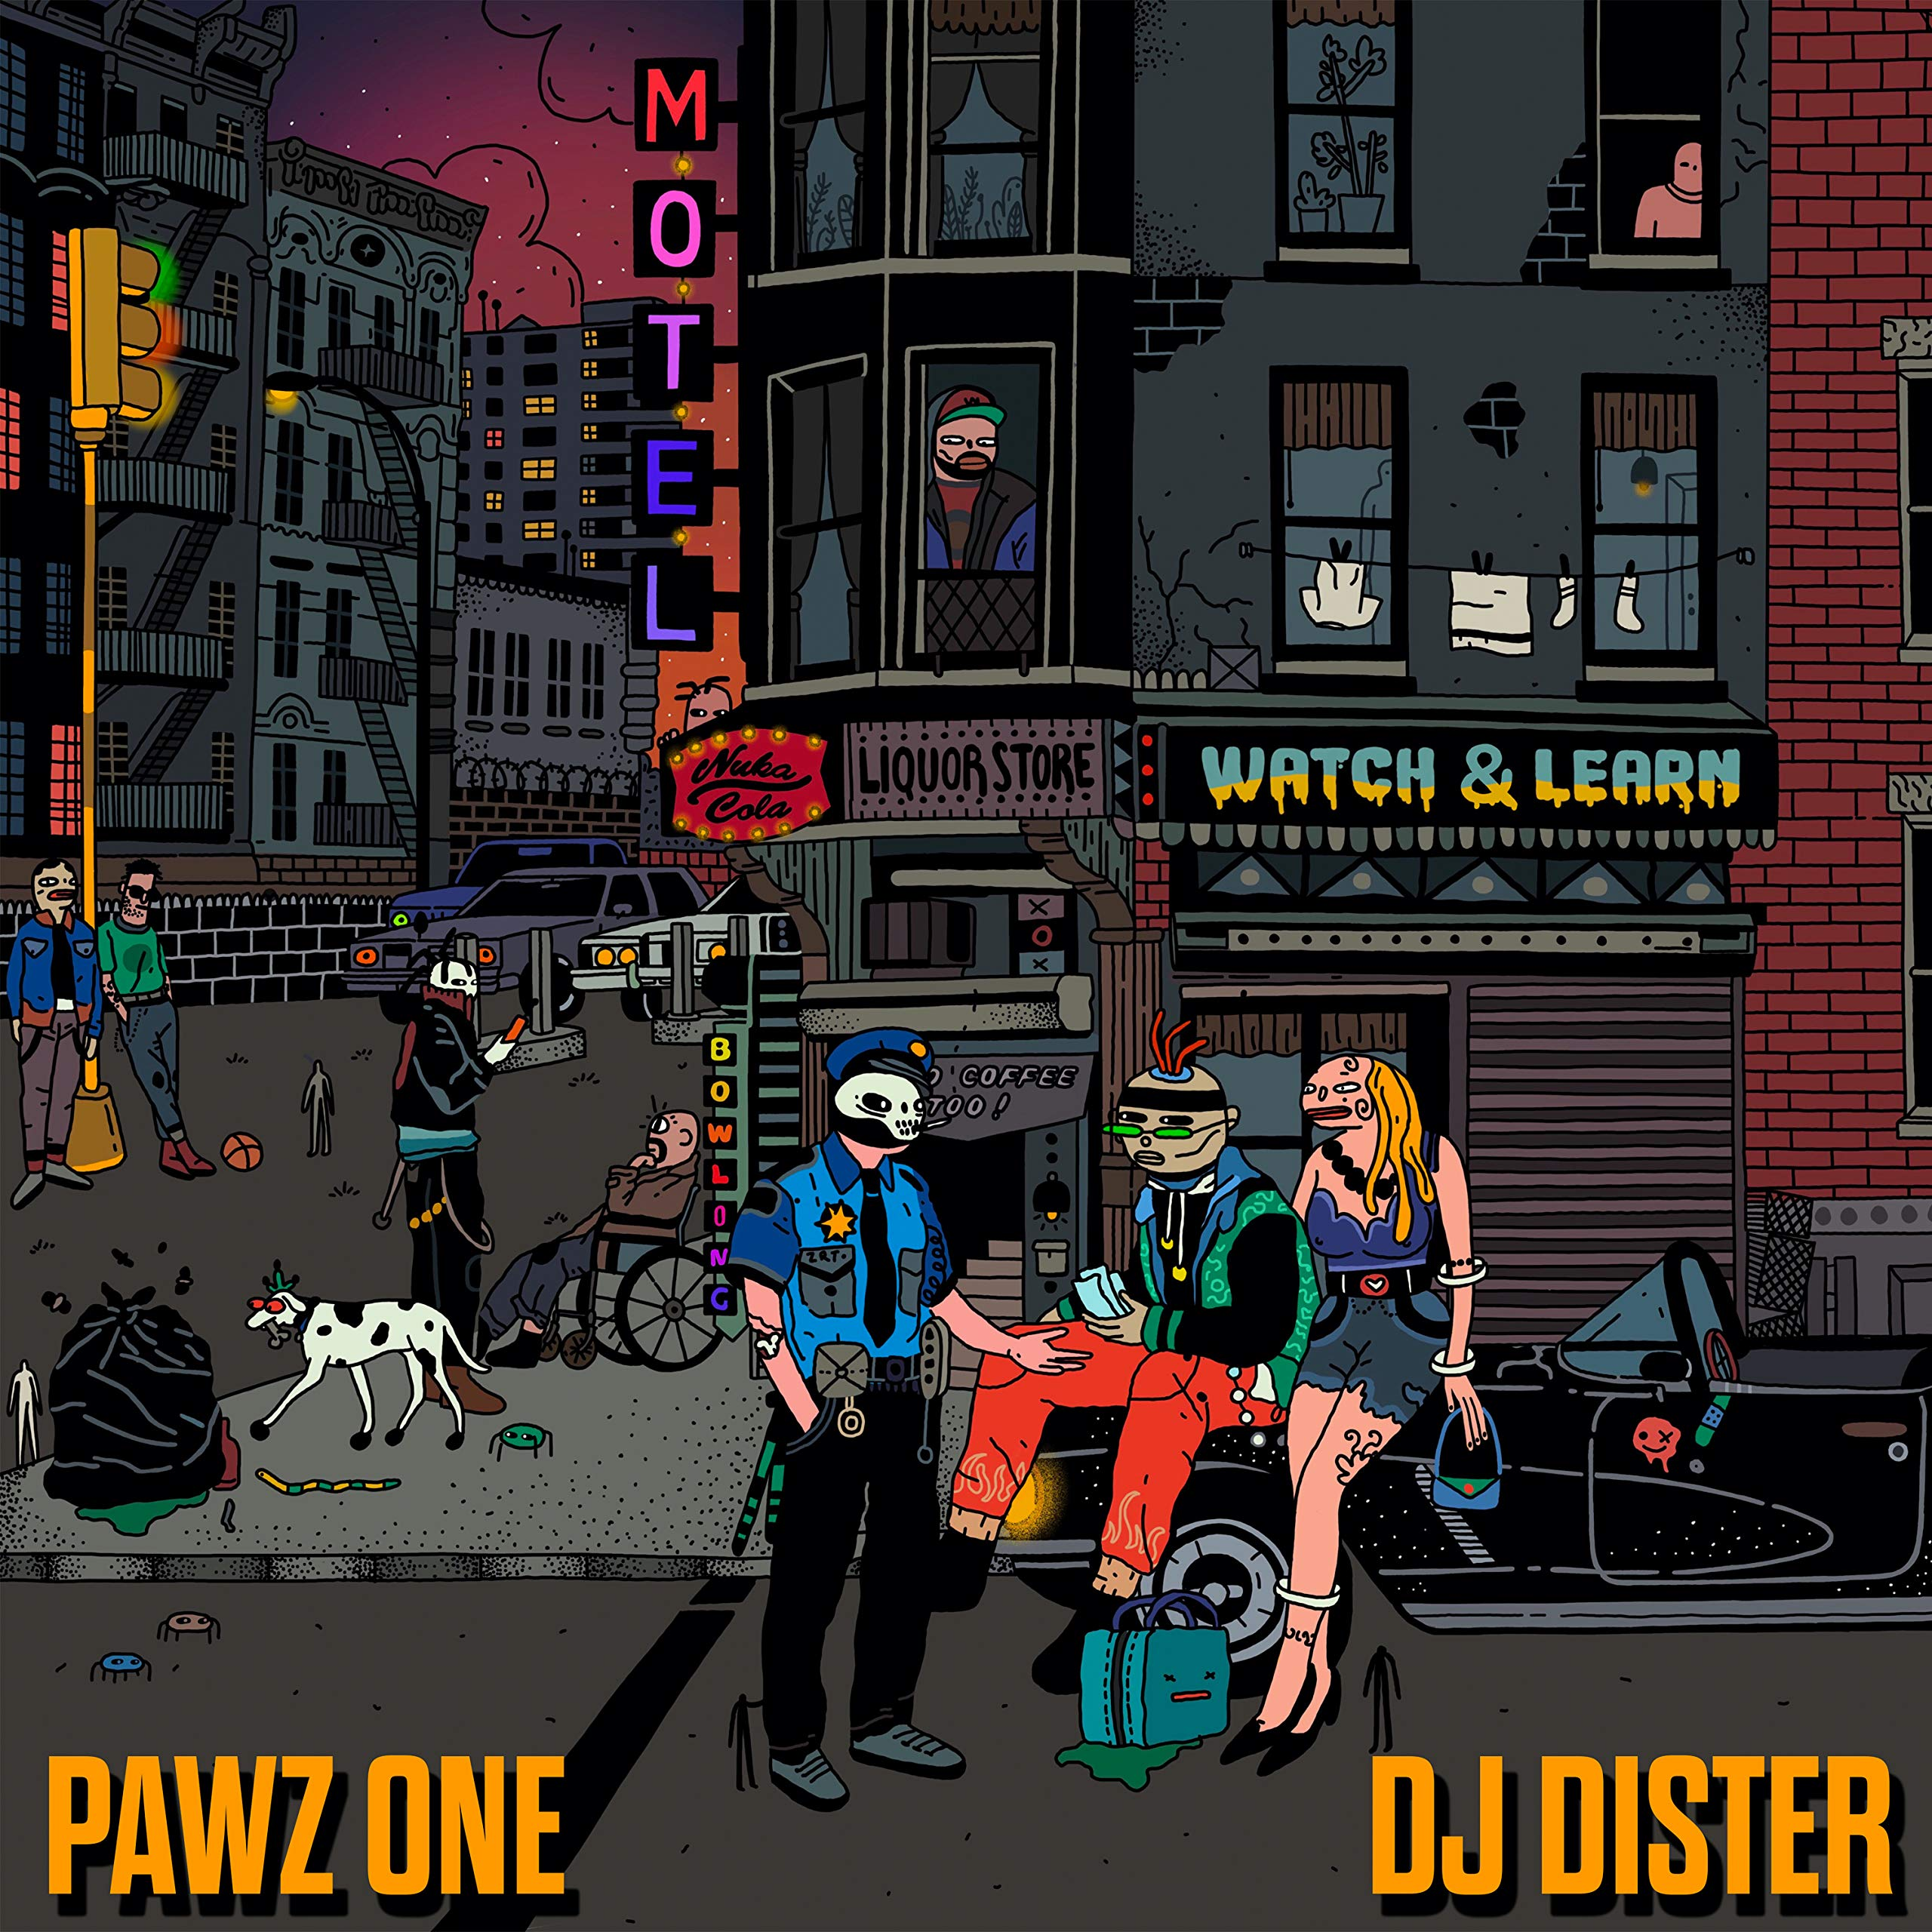 Pawz One & DJ Dister - Watch & Learn (2020) [FLAC] Download